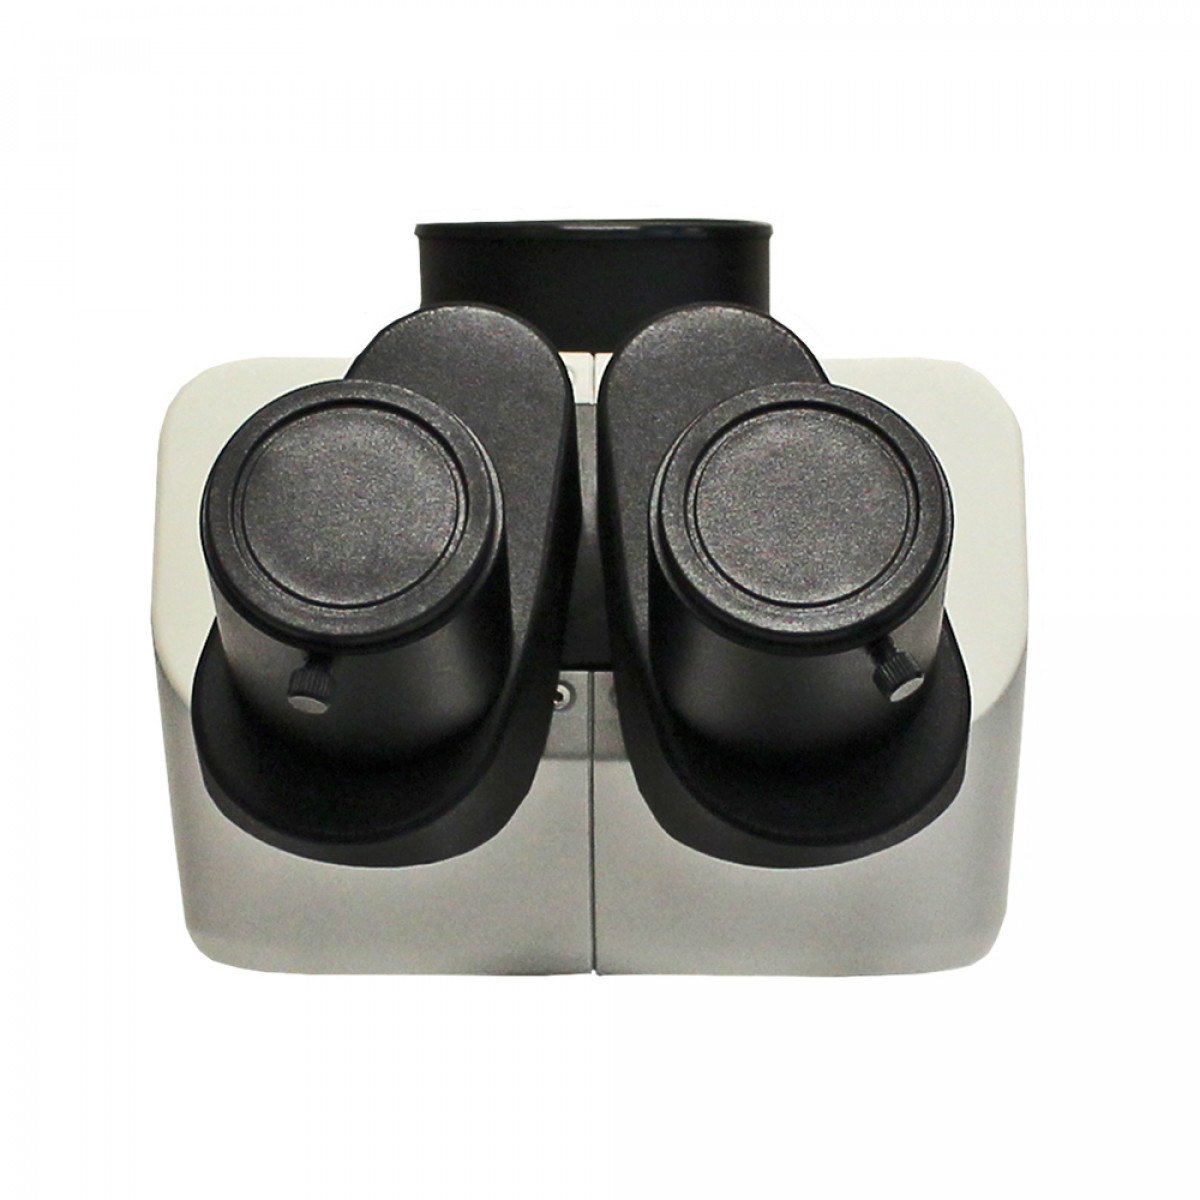 112-11-02-Trinocular Viewing Head - Z12 Serie s- Front View